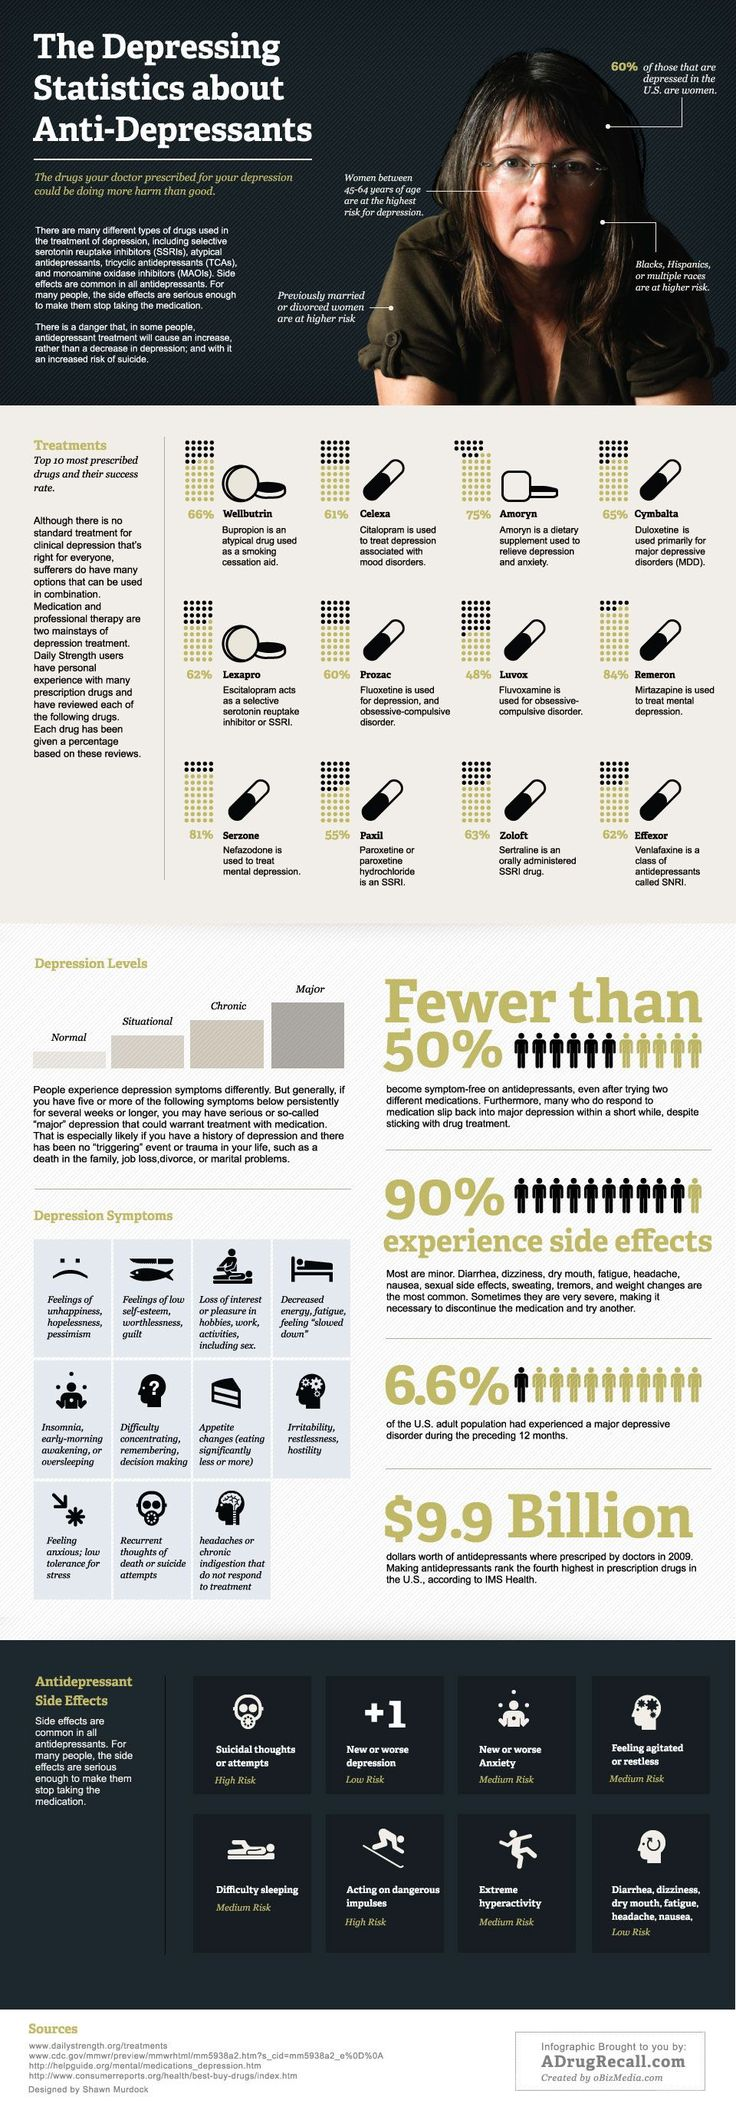 The Depressing Statistics about Anti-Depressants...don't believe everything you see on an infograph: http://psychcentral.com/blog/archives/2011/06/29/an-epidemic-of-bad-infographics-depression/